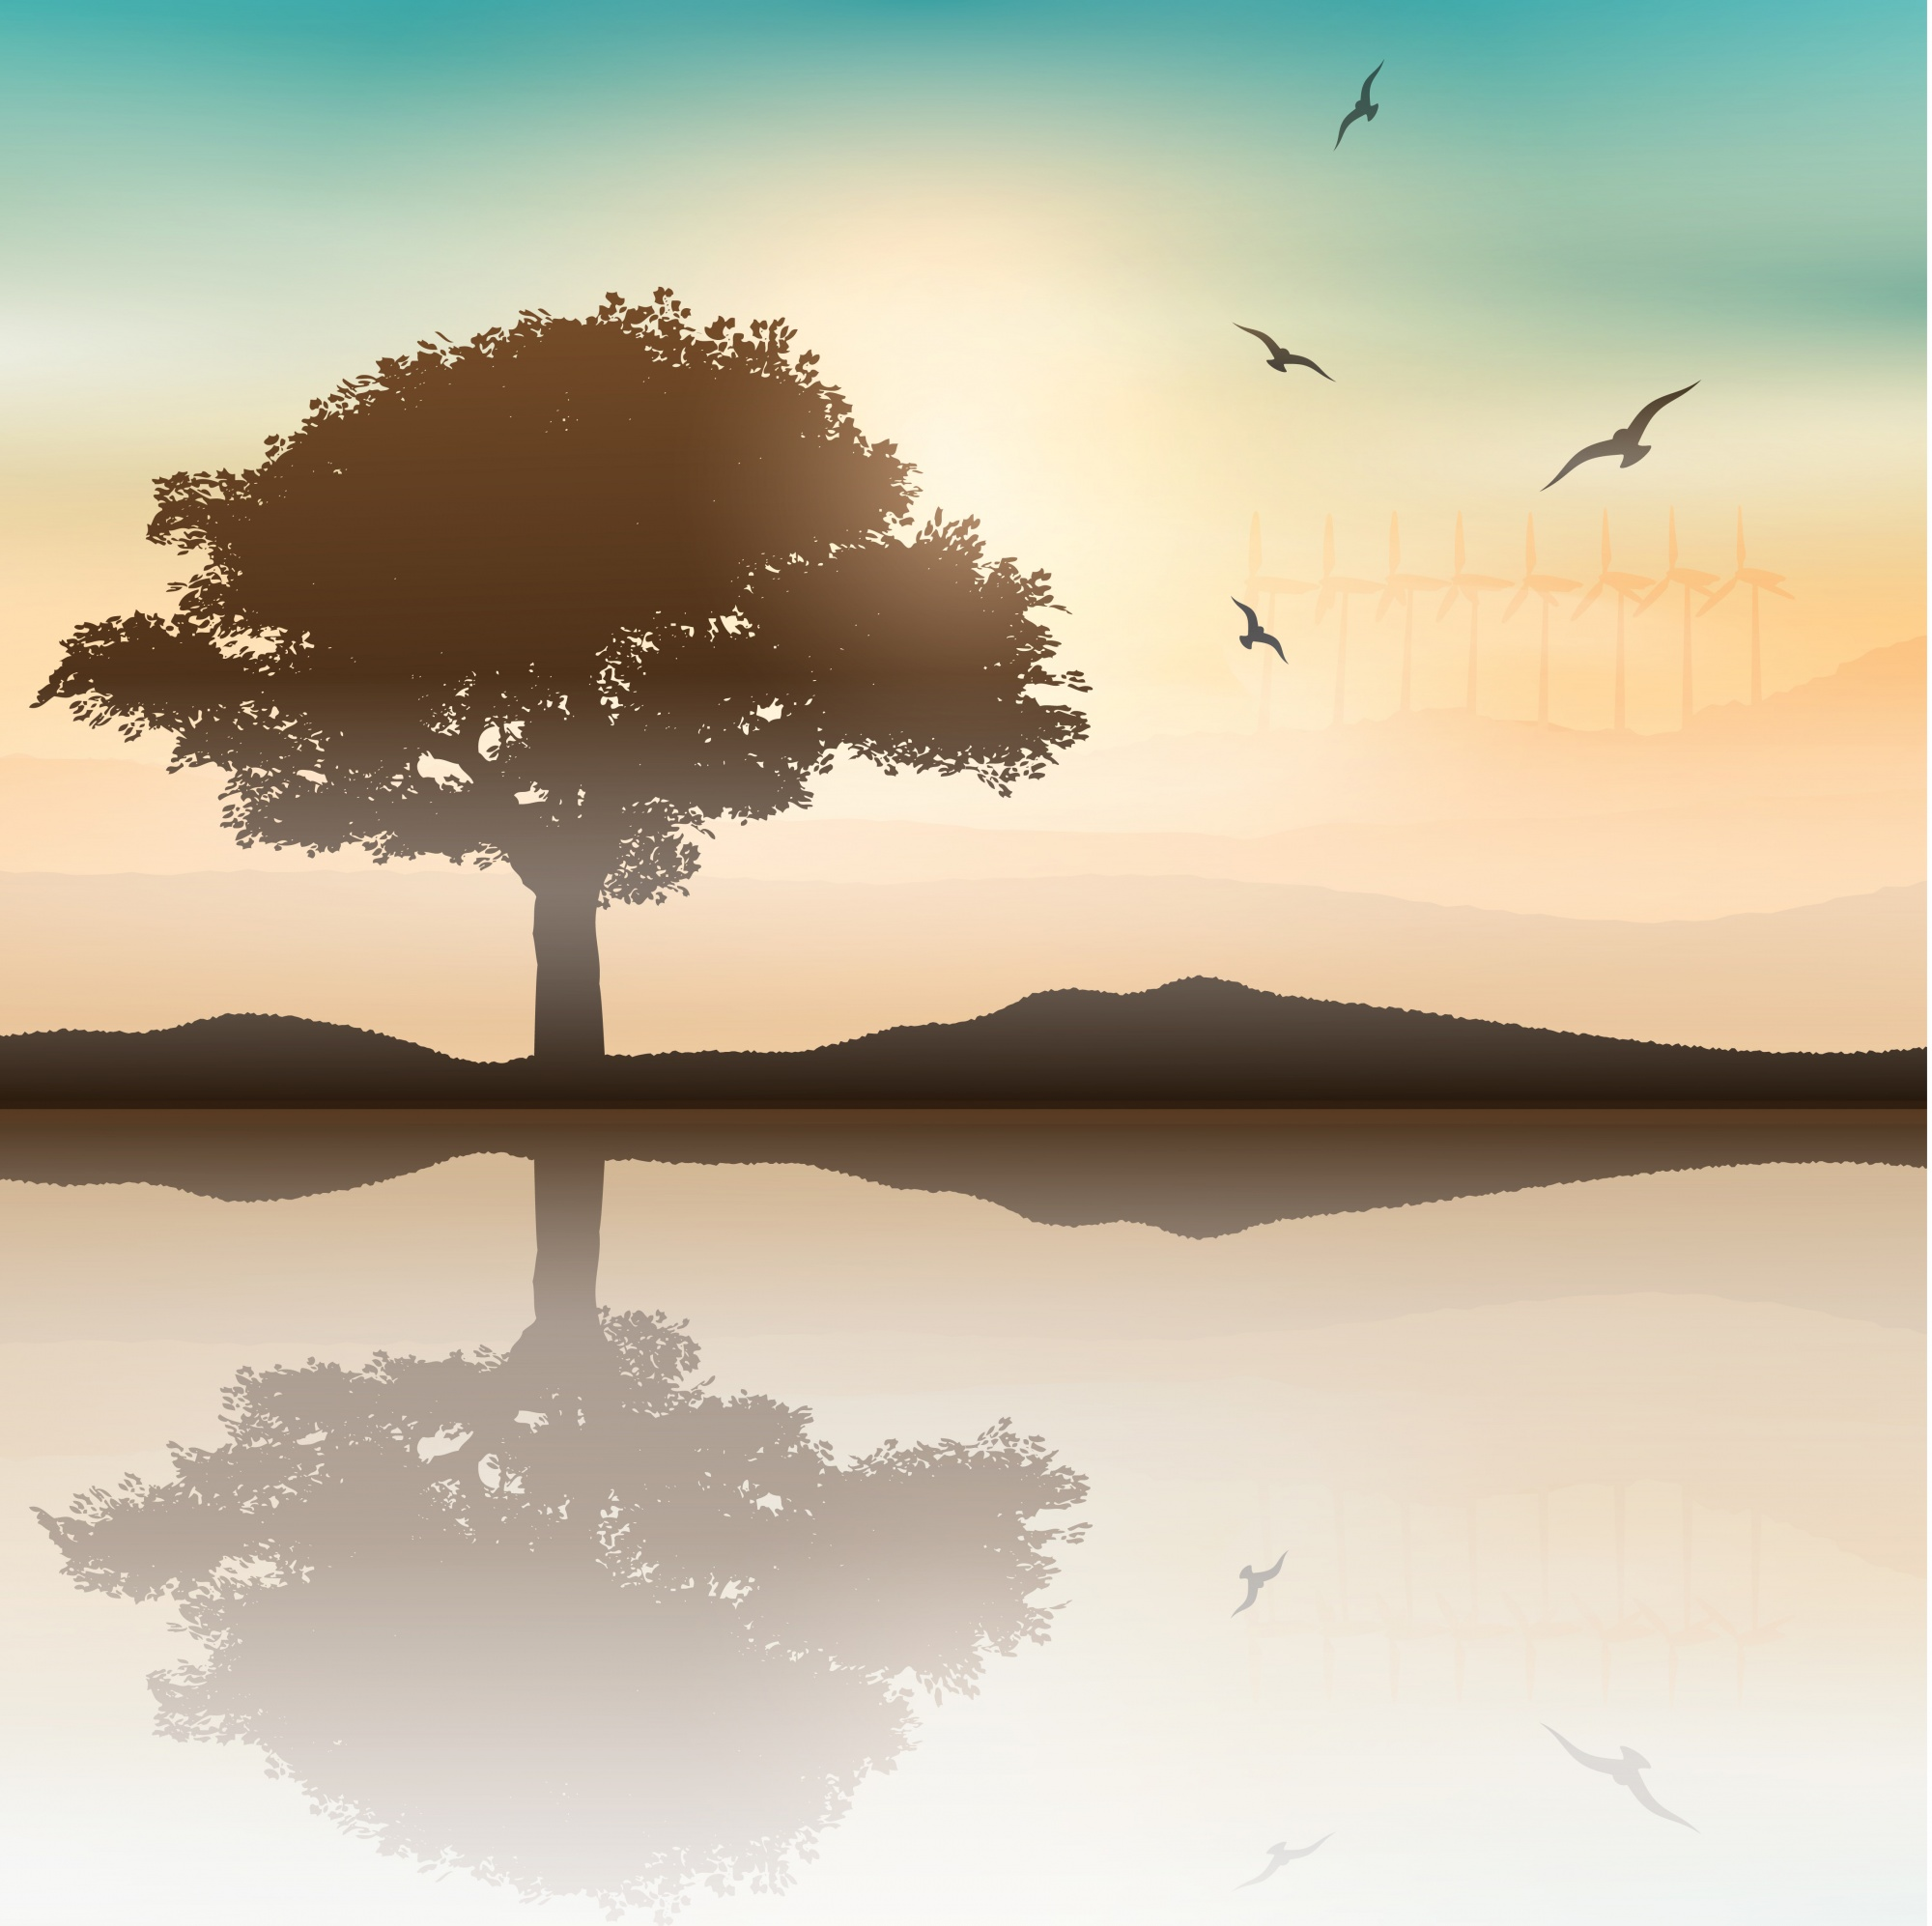 Landscape with a tree silhouette